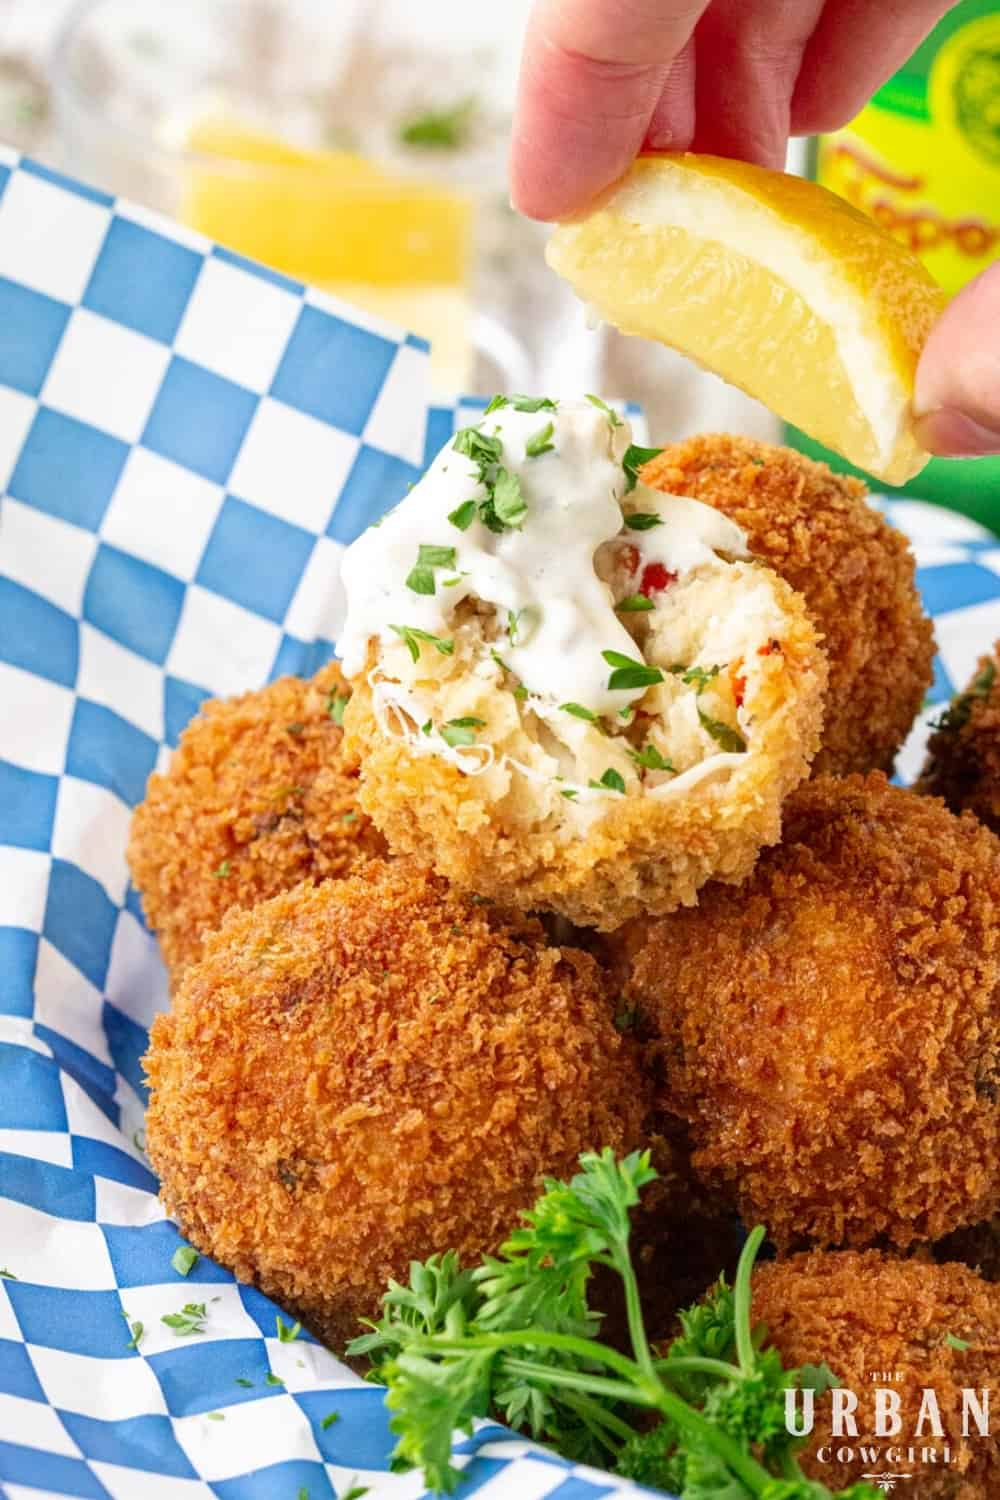 A basket of delicious golden brown fried crab balls being dunked in tartar sauce and spritzed with lemon.